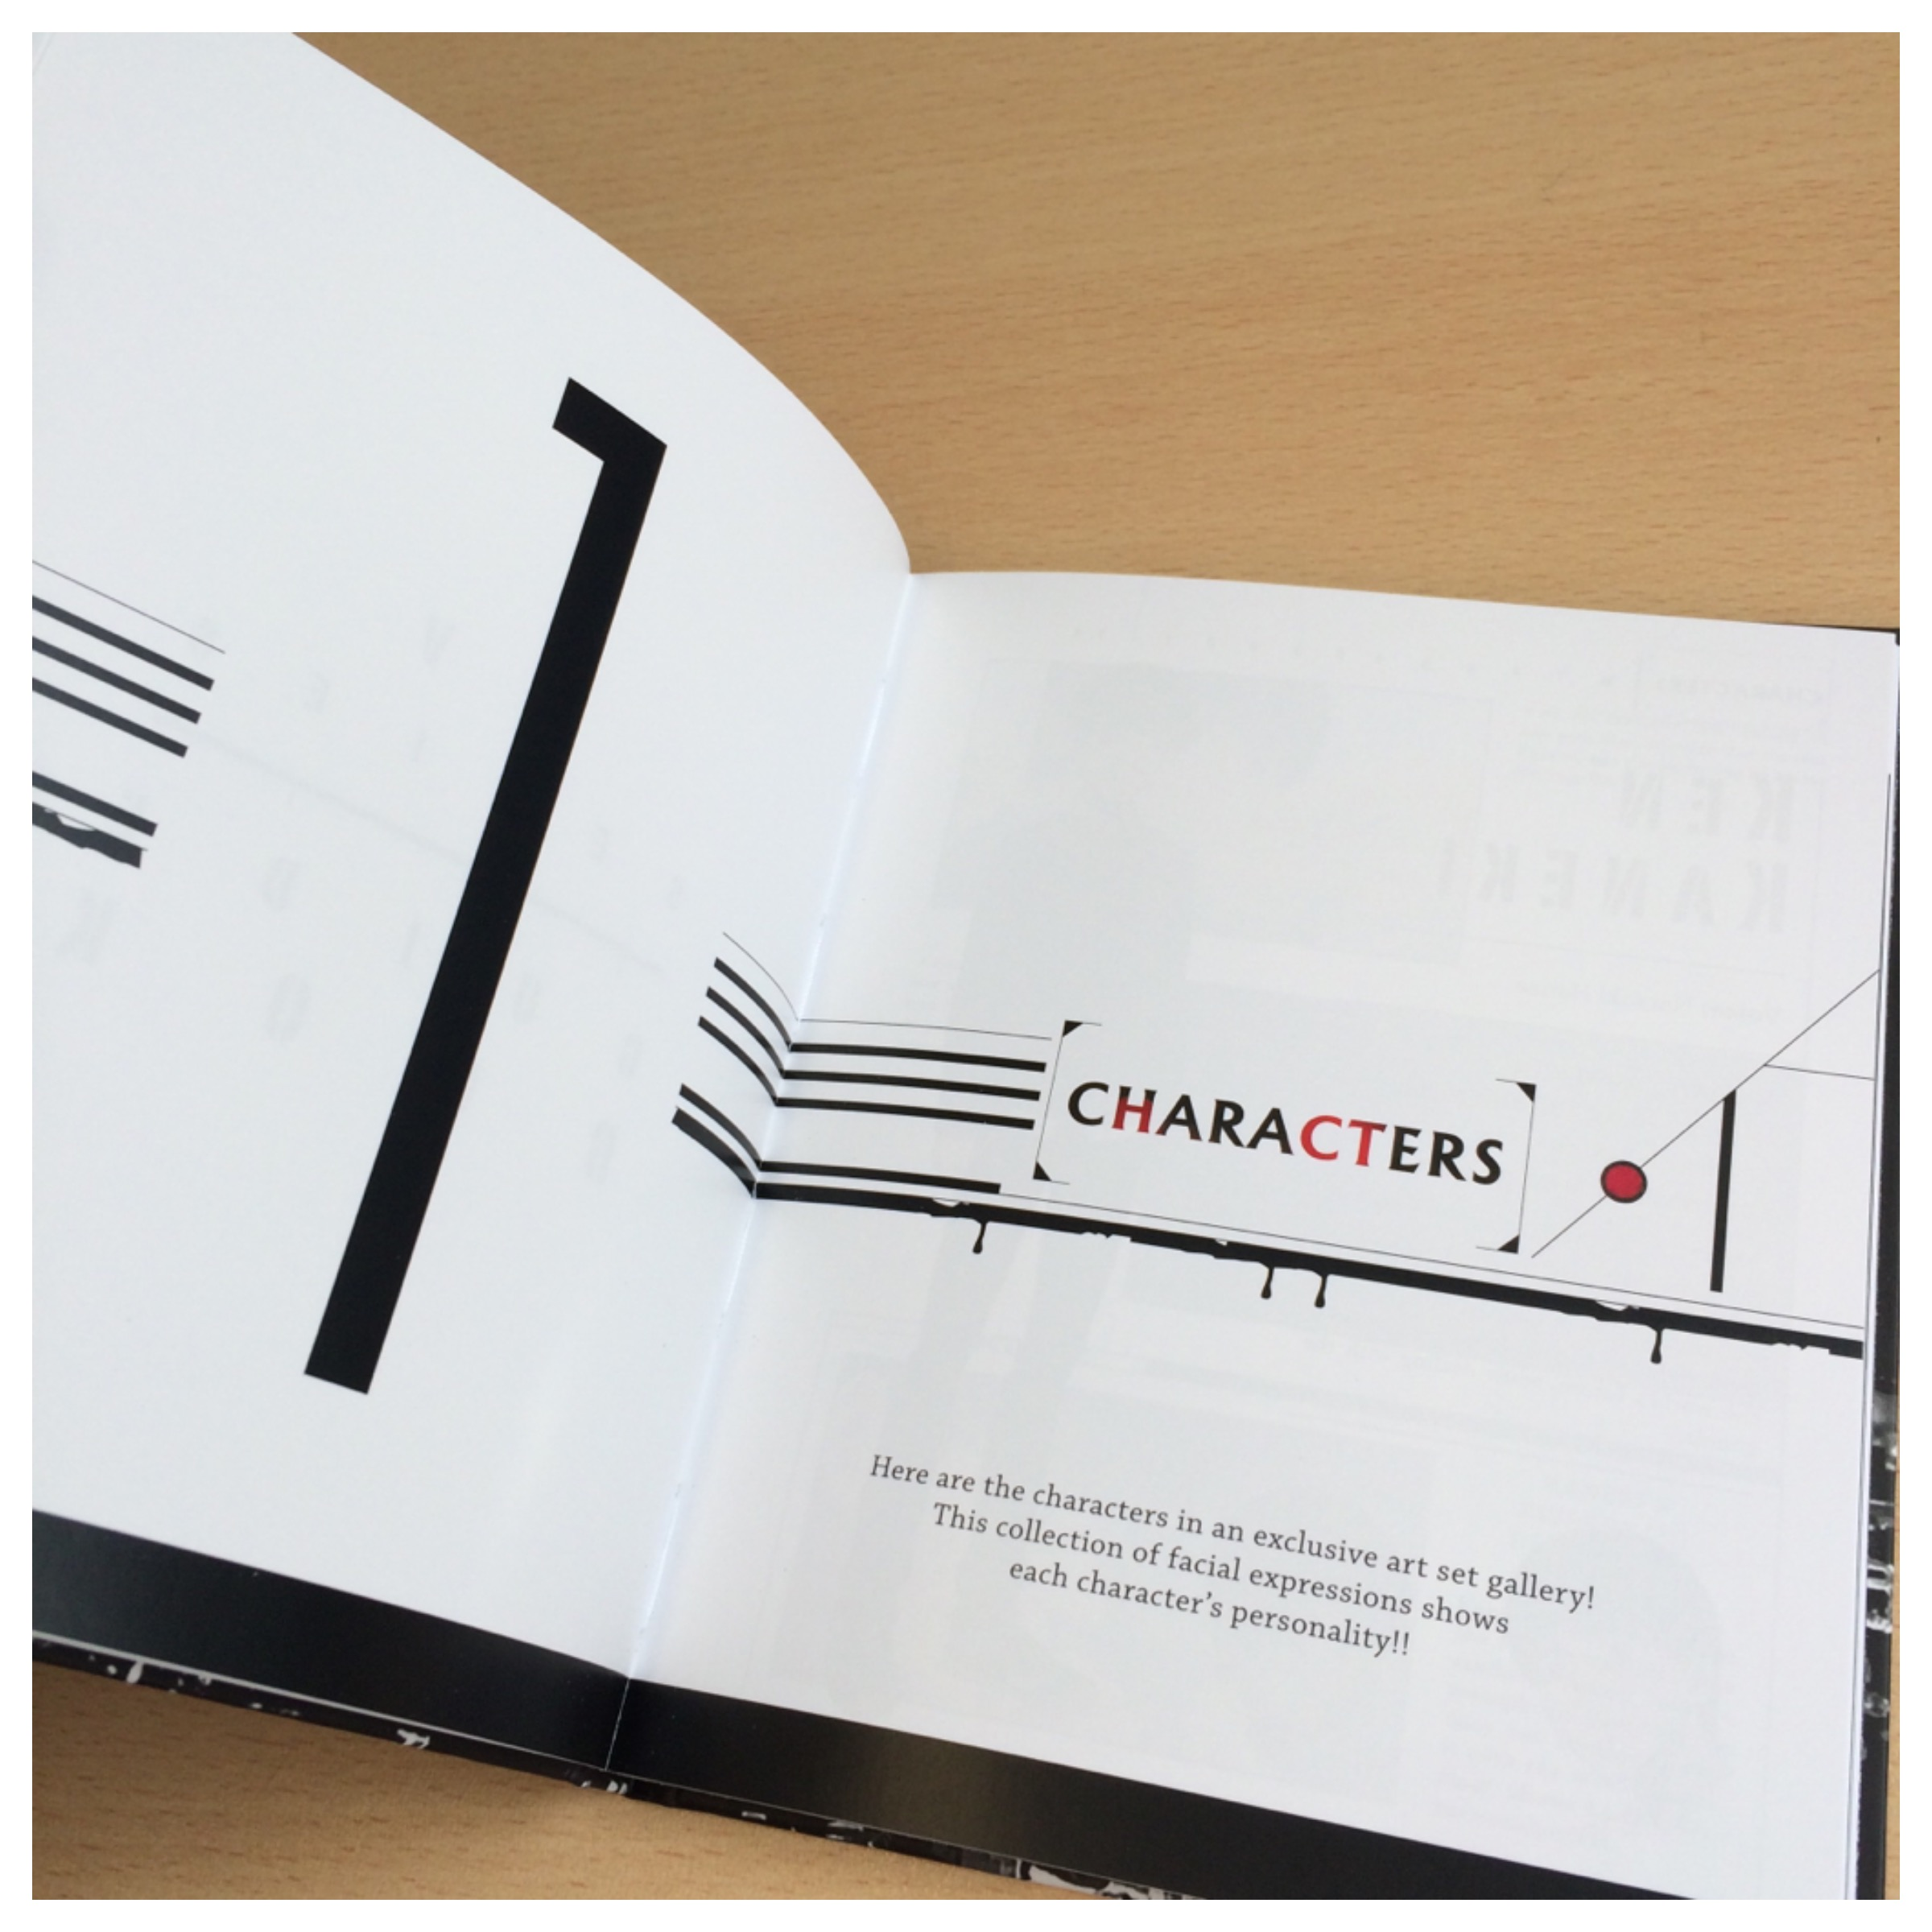 The book is split into 4 sections, the first sections focuses on the characters.